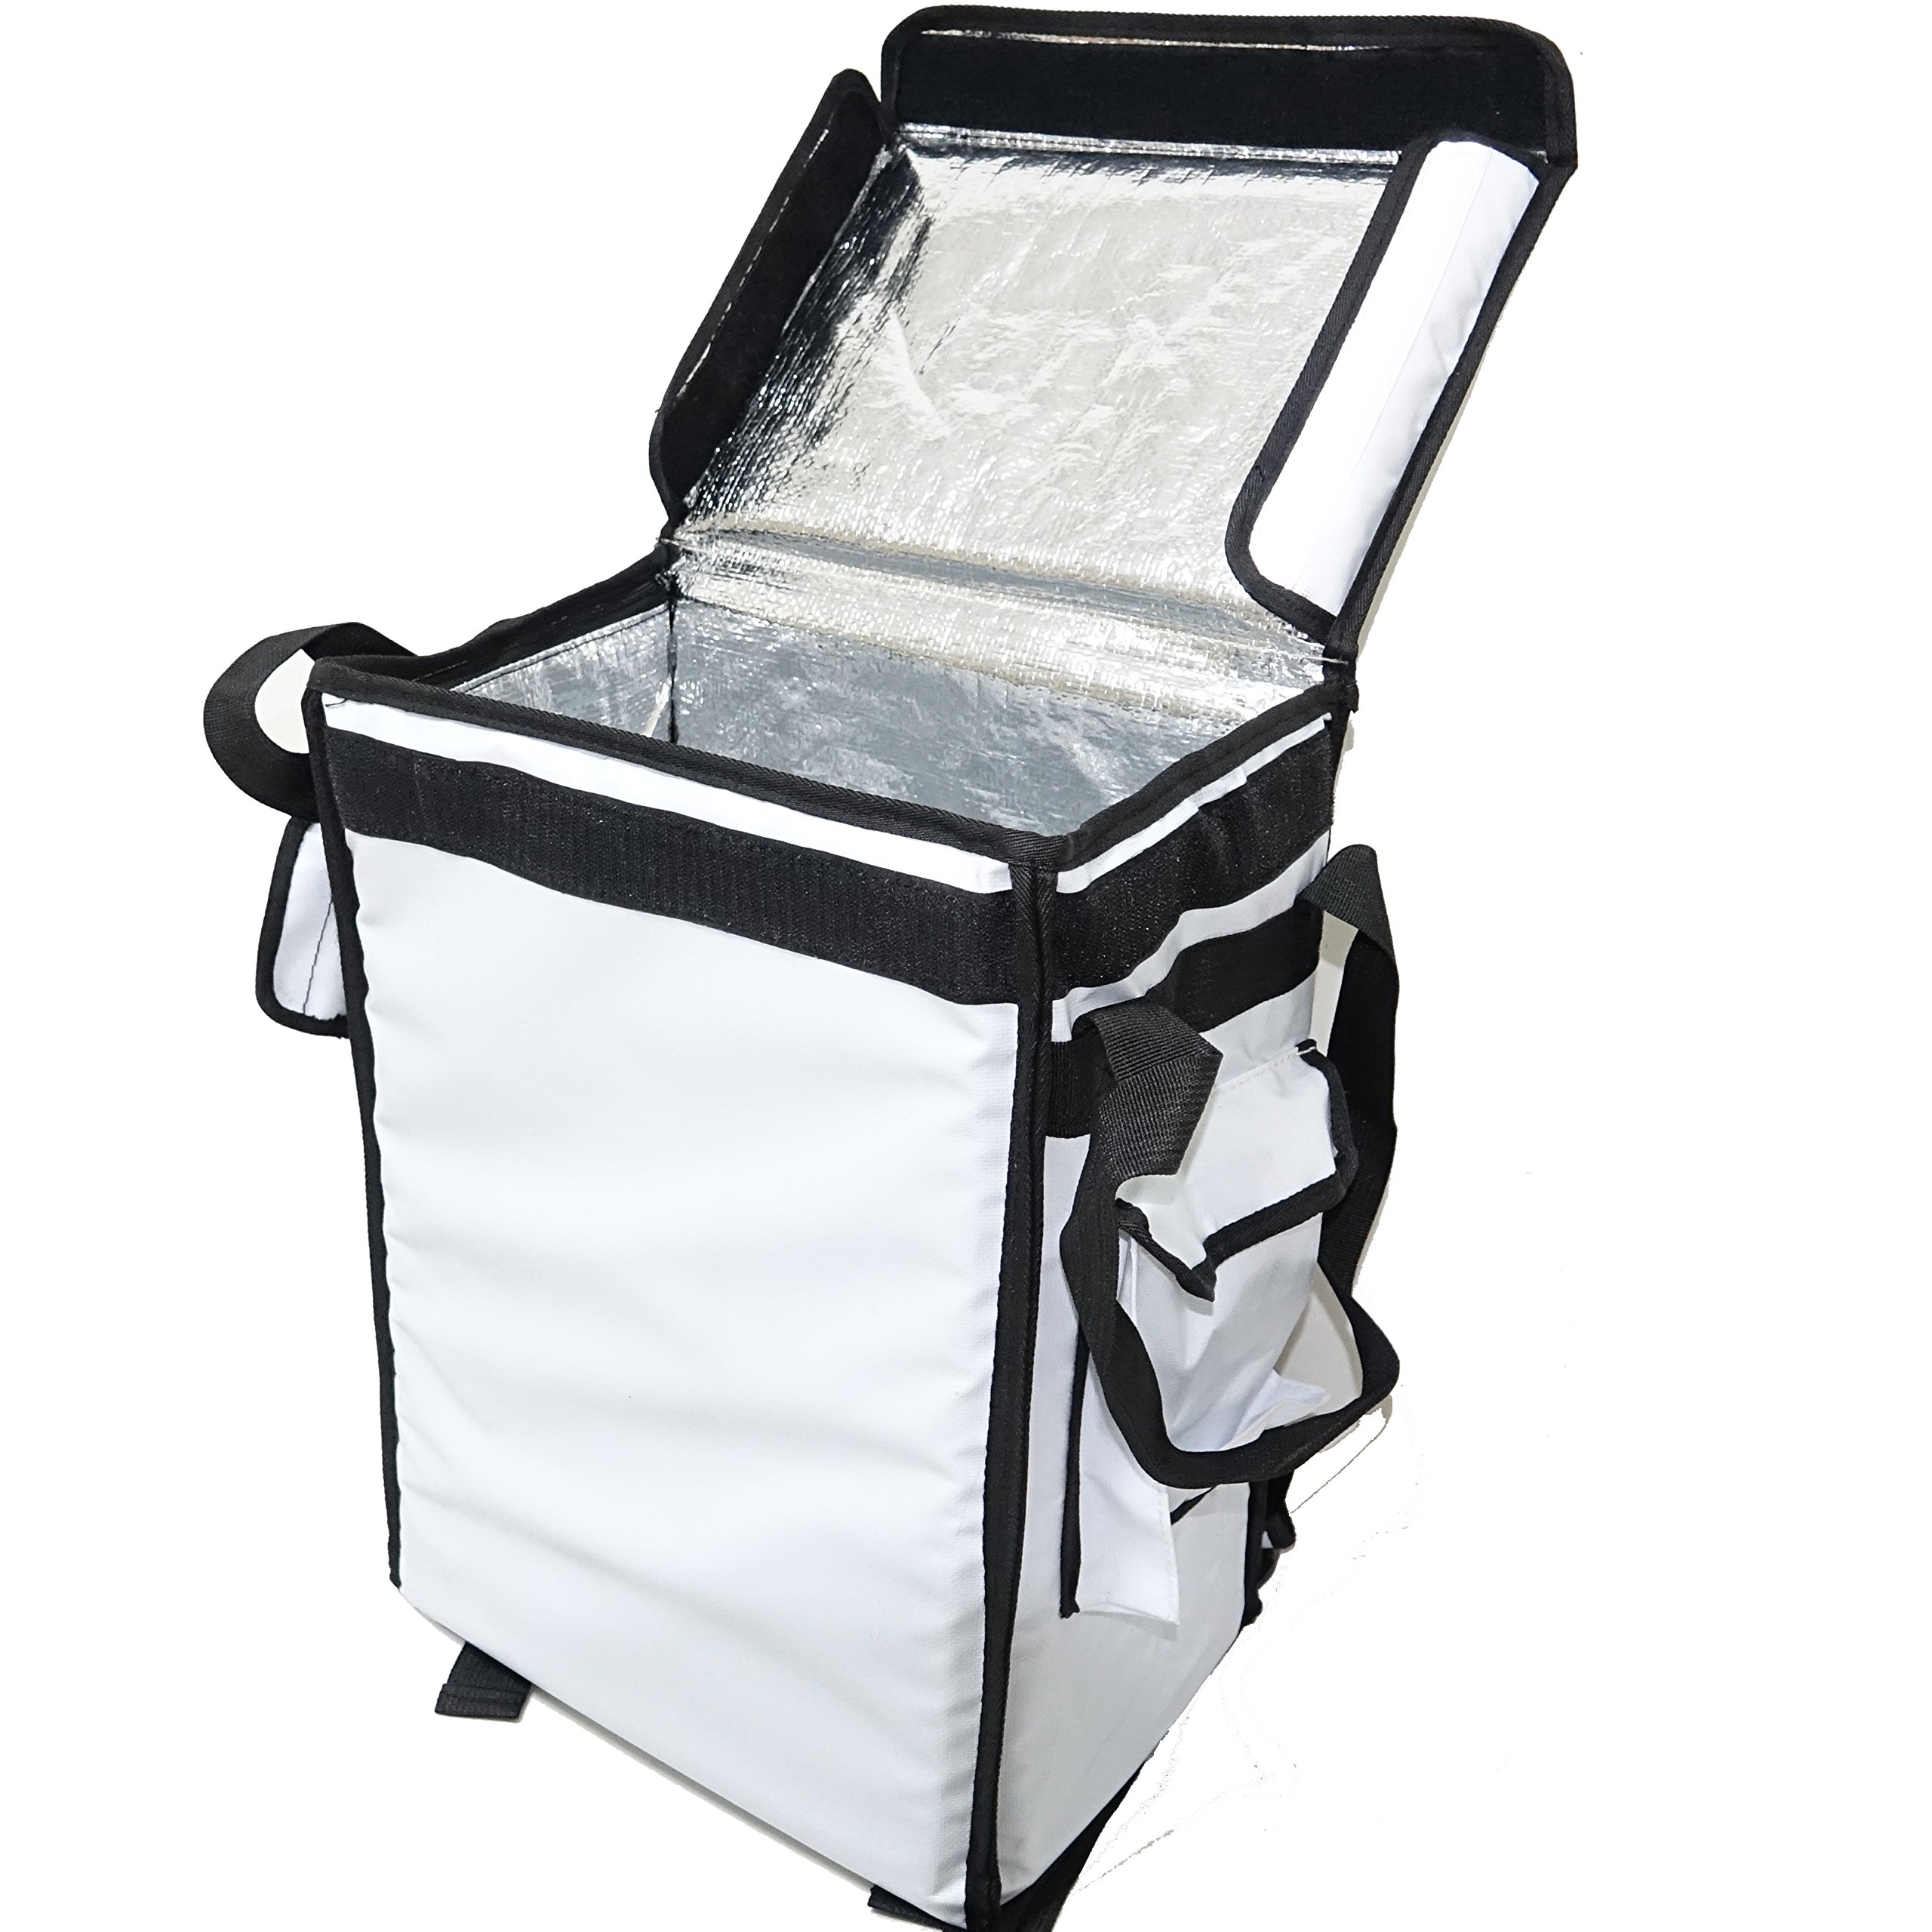 PK-33VW: Catering Delivery Food Bag, Warmer Backpack, Top Loading, 13'' L x 9'' W x 18'' H